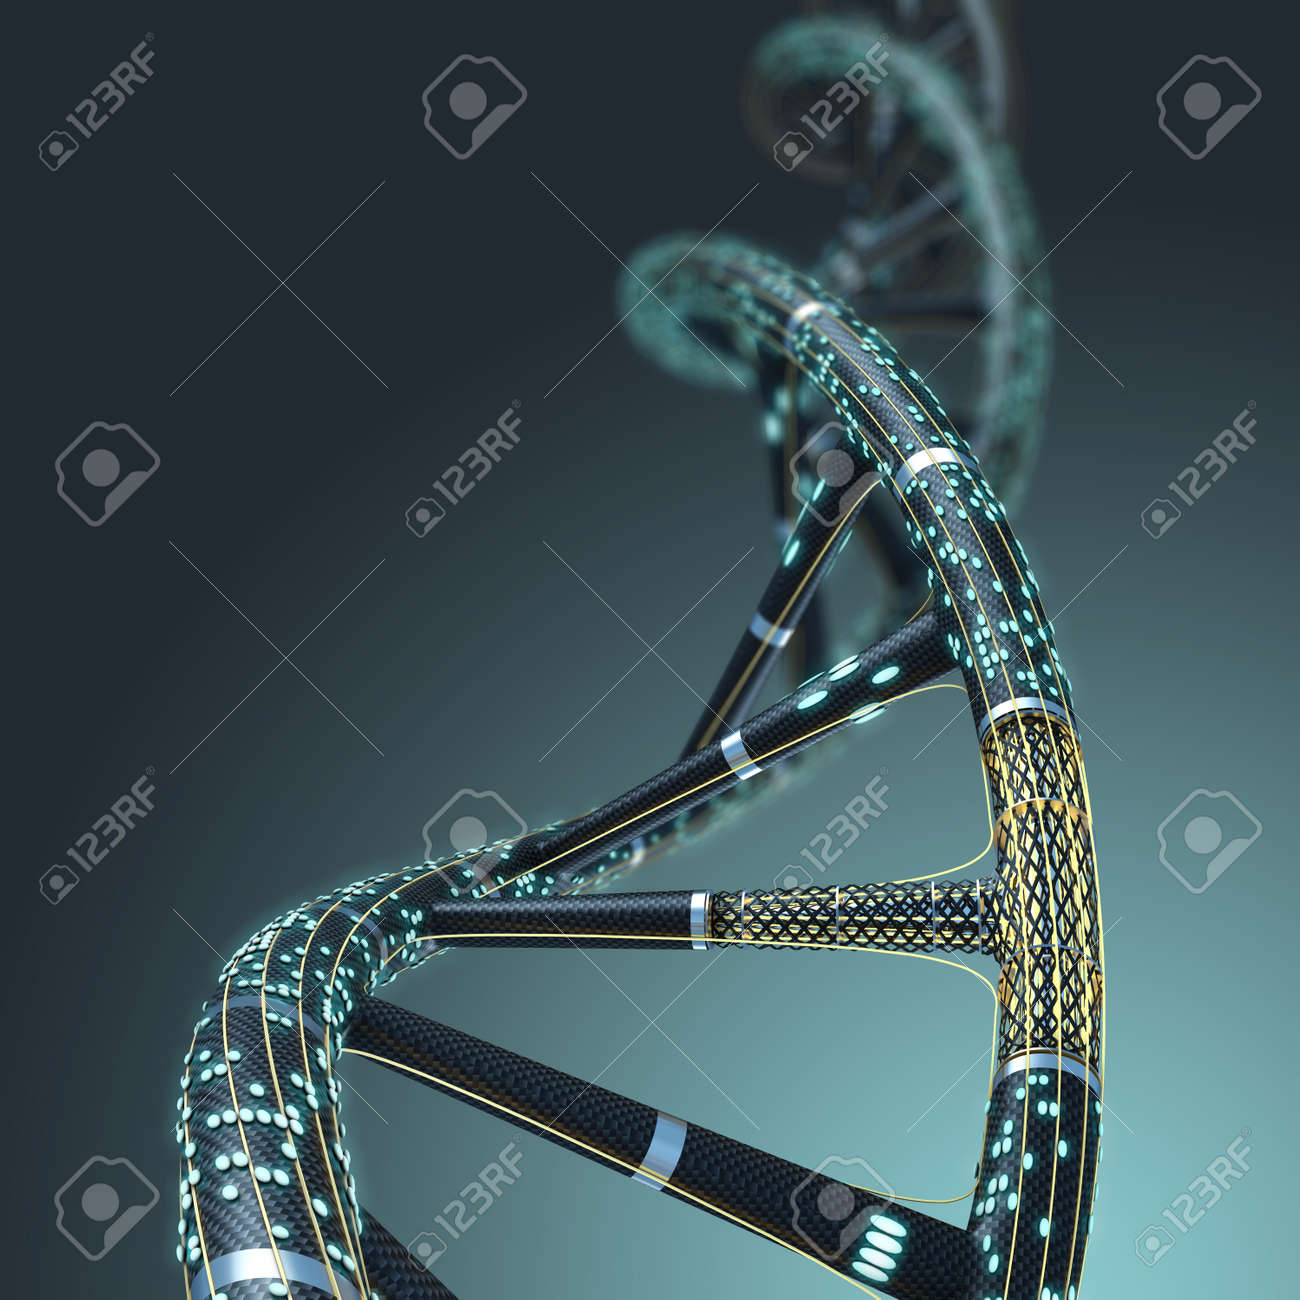 Artificial DNA molecule, the concept of artificial intelligence, on a dark background - 51350972